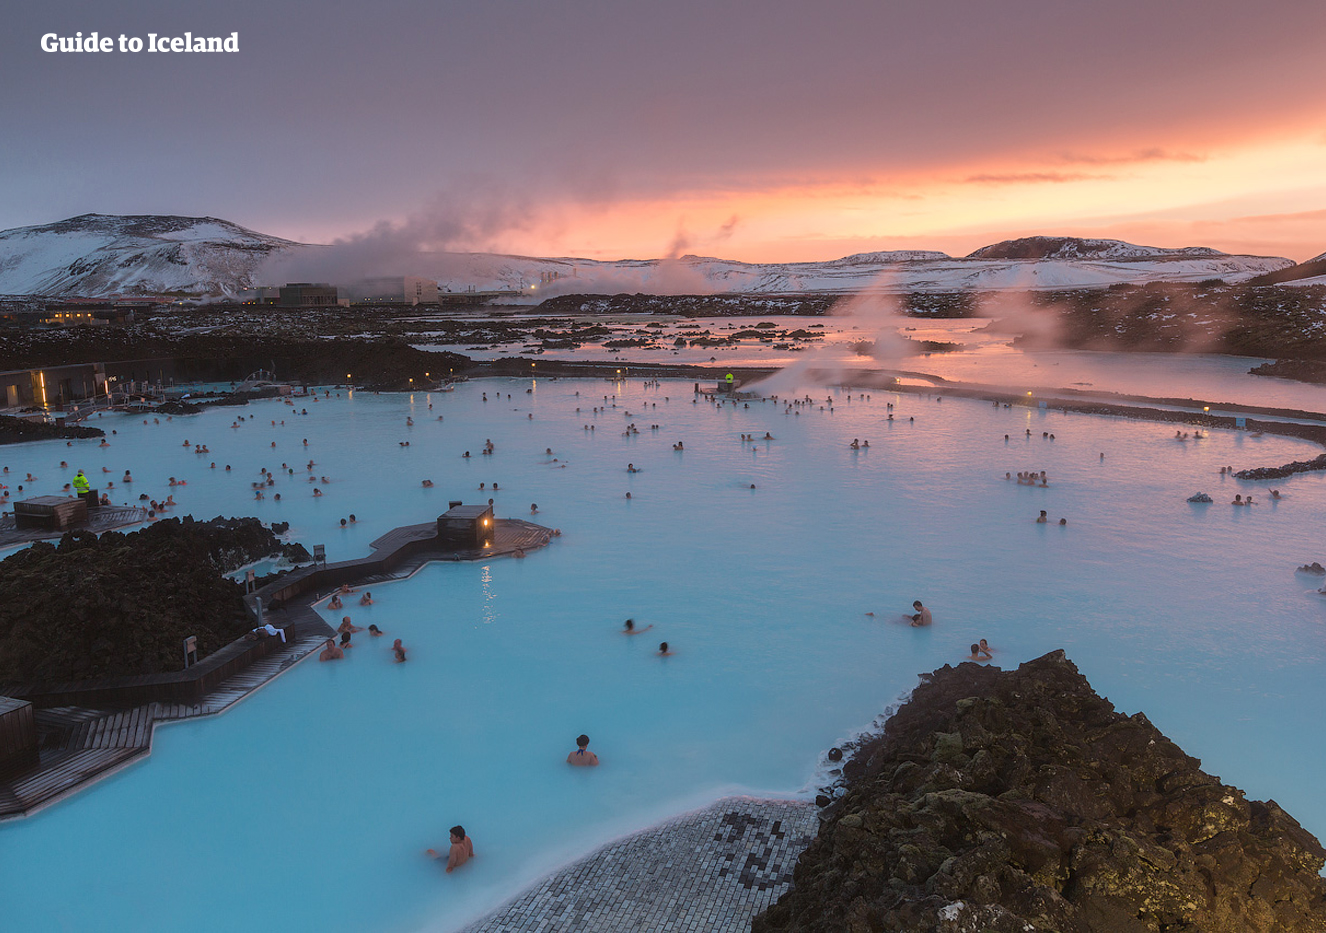 The Blue Lagoon is the most famous swimming pool in Iceland.